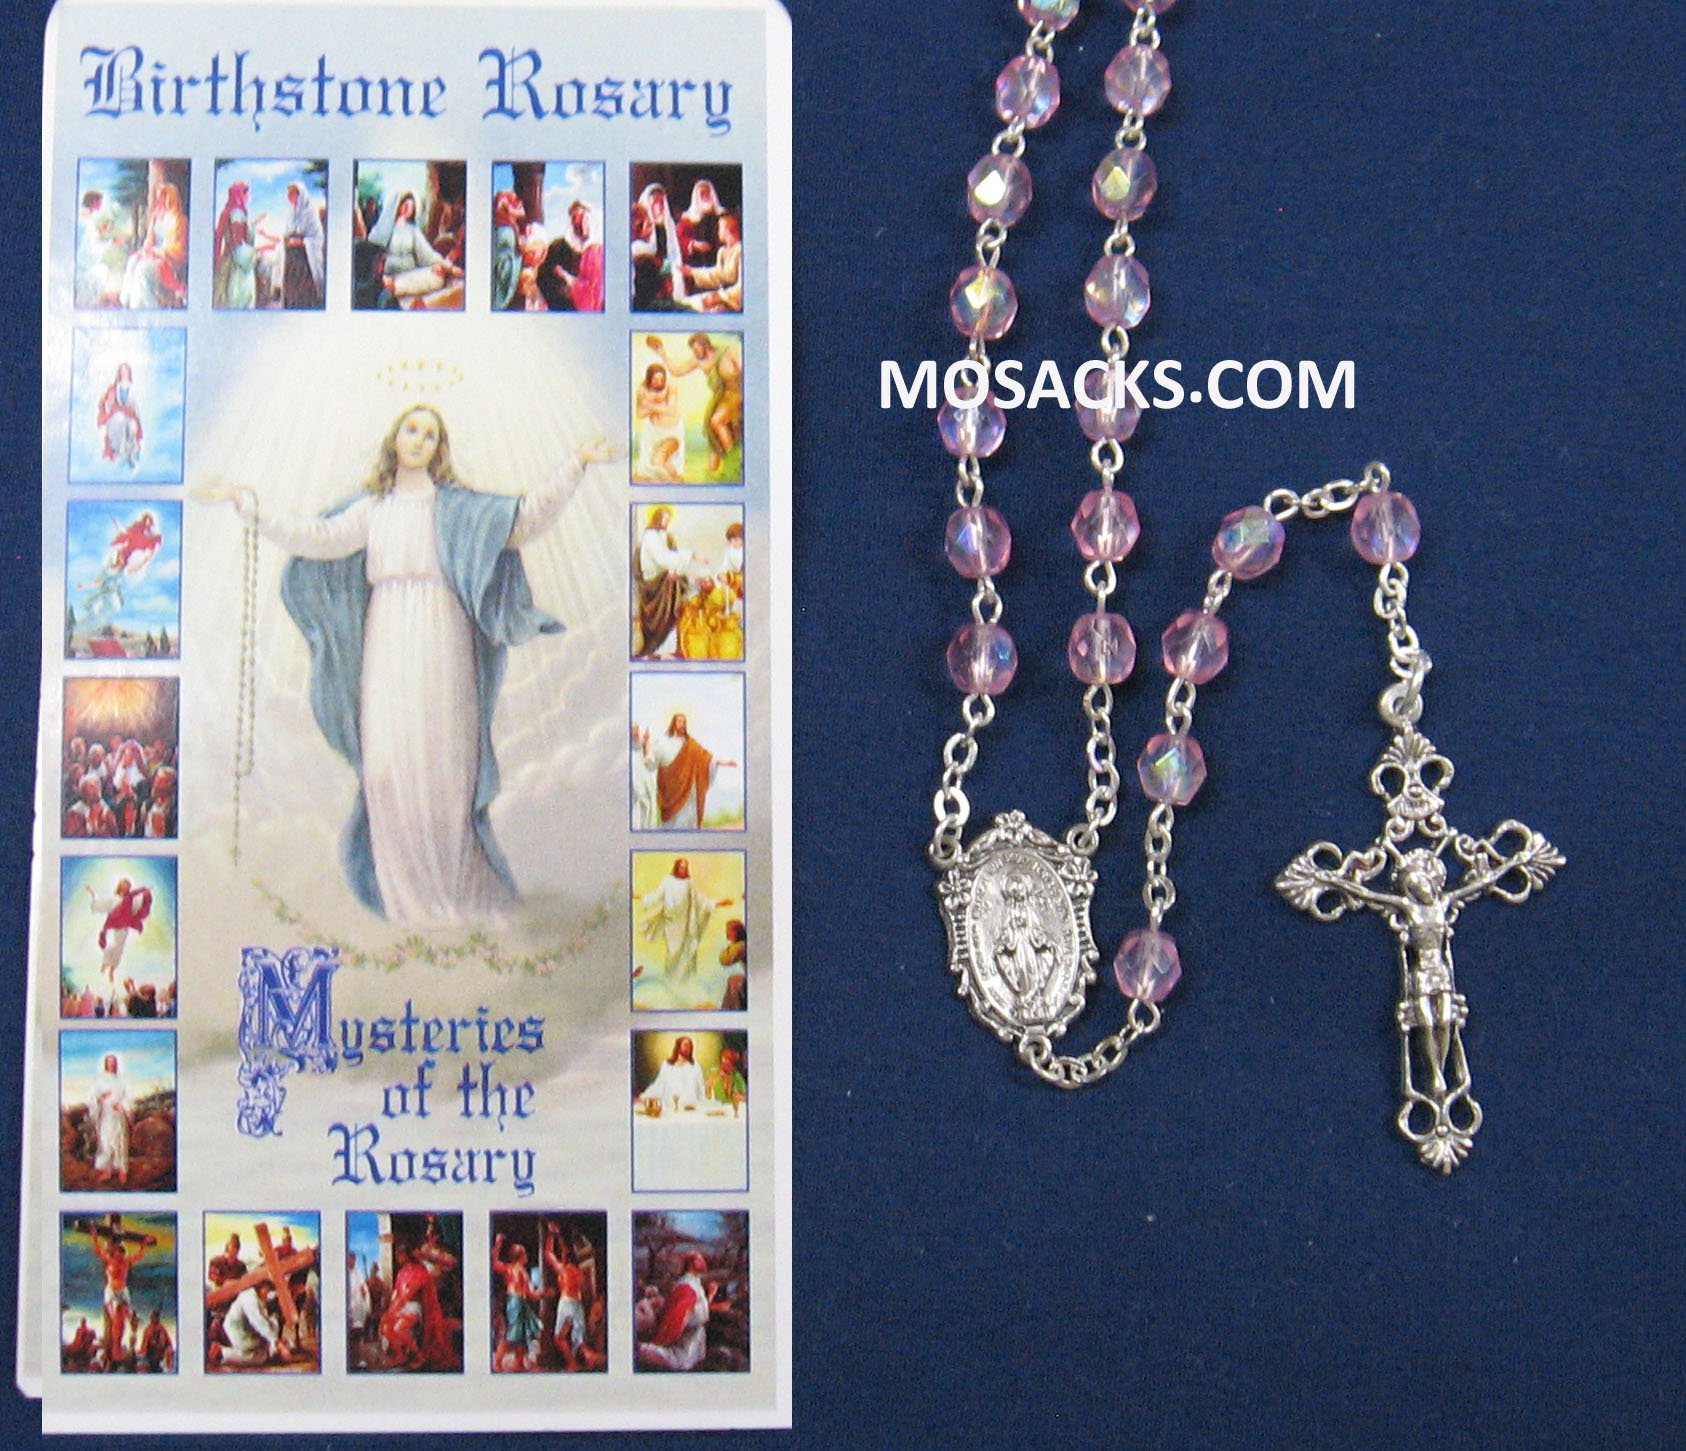 October Rose Aurora Borealis Birthstone Rosary 64-307/RZ/C1